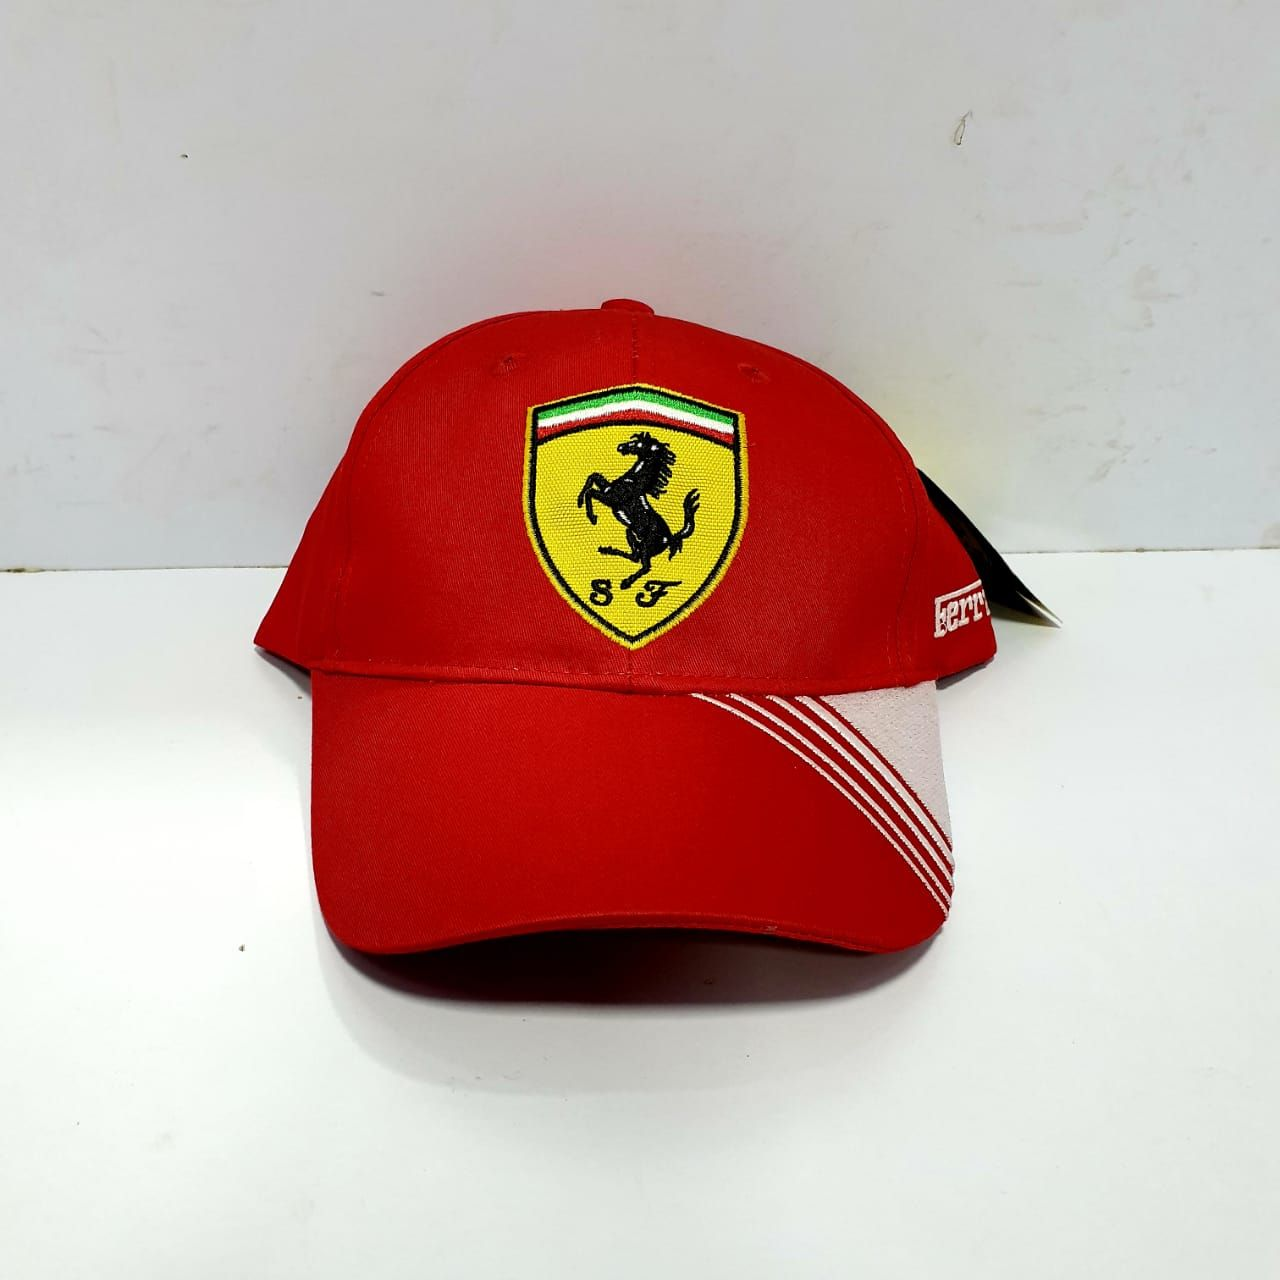 Ferrari Red Caps